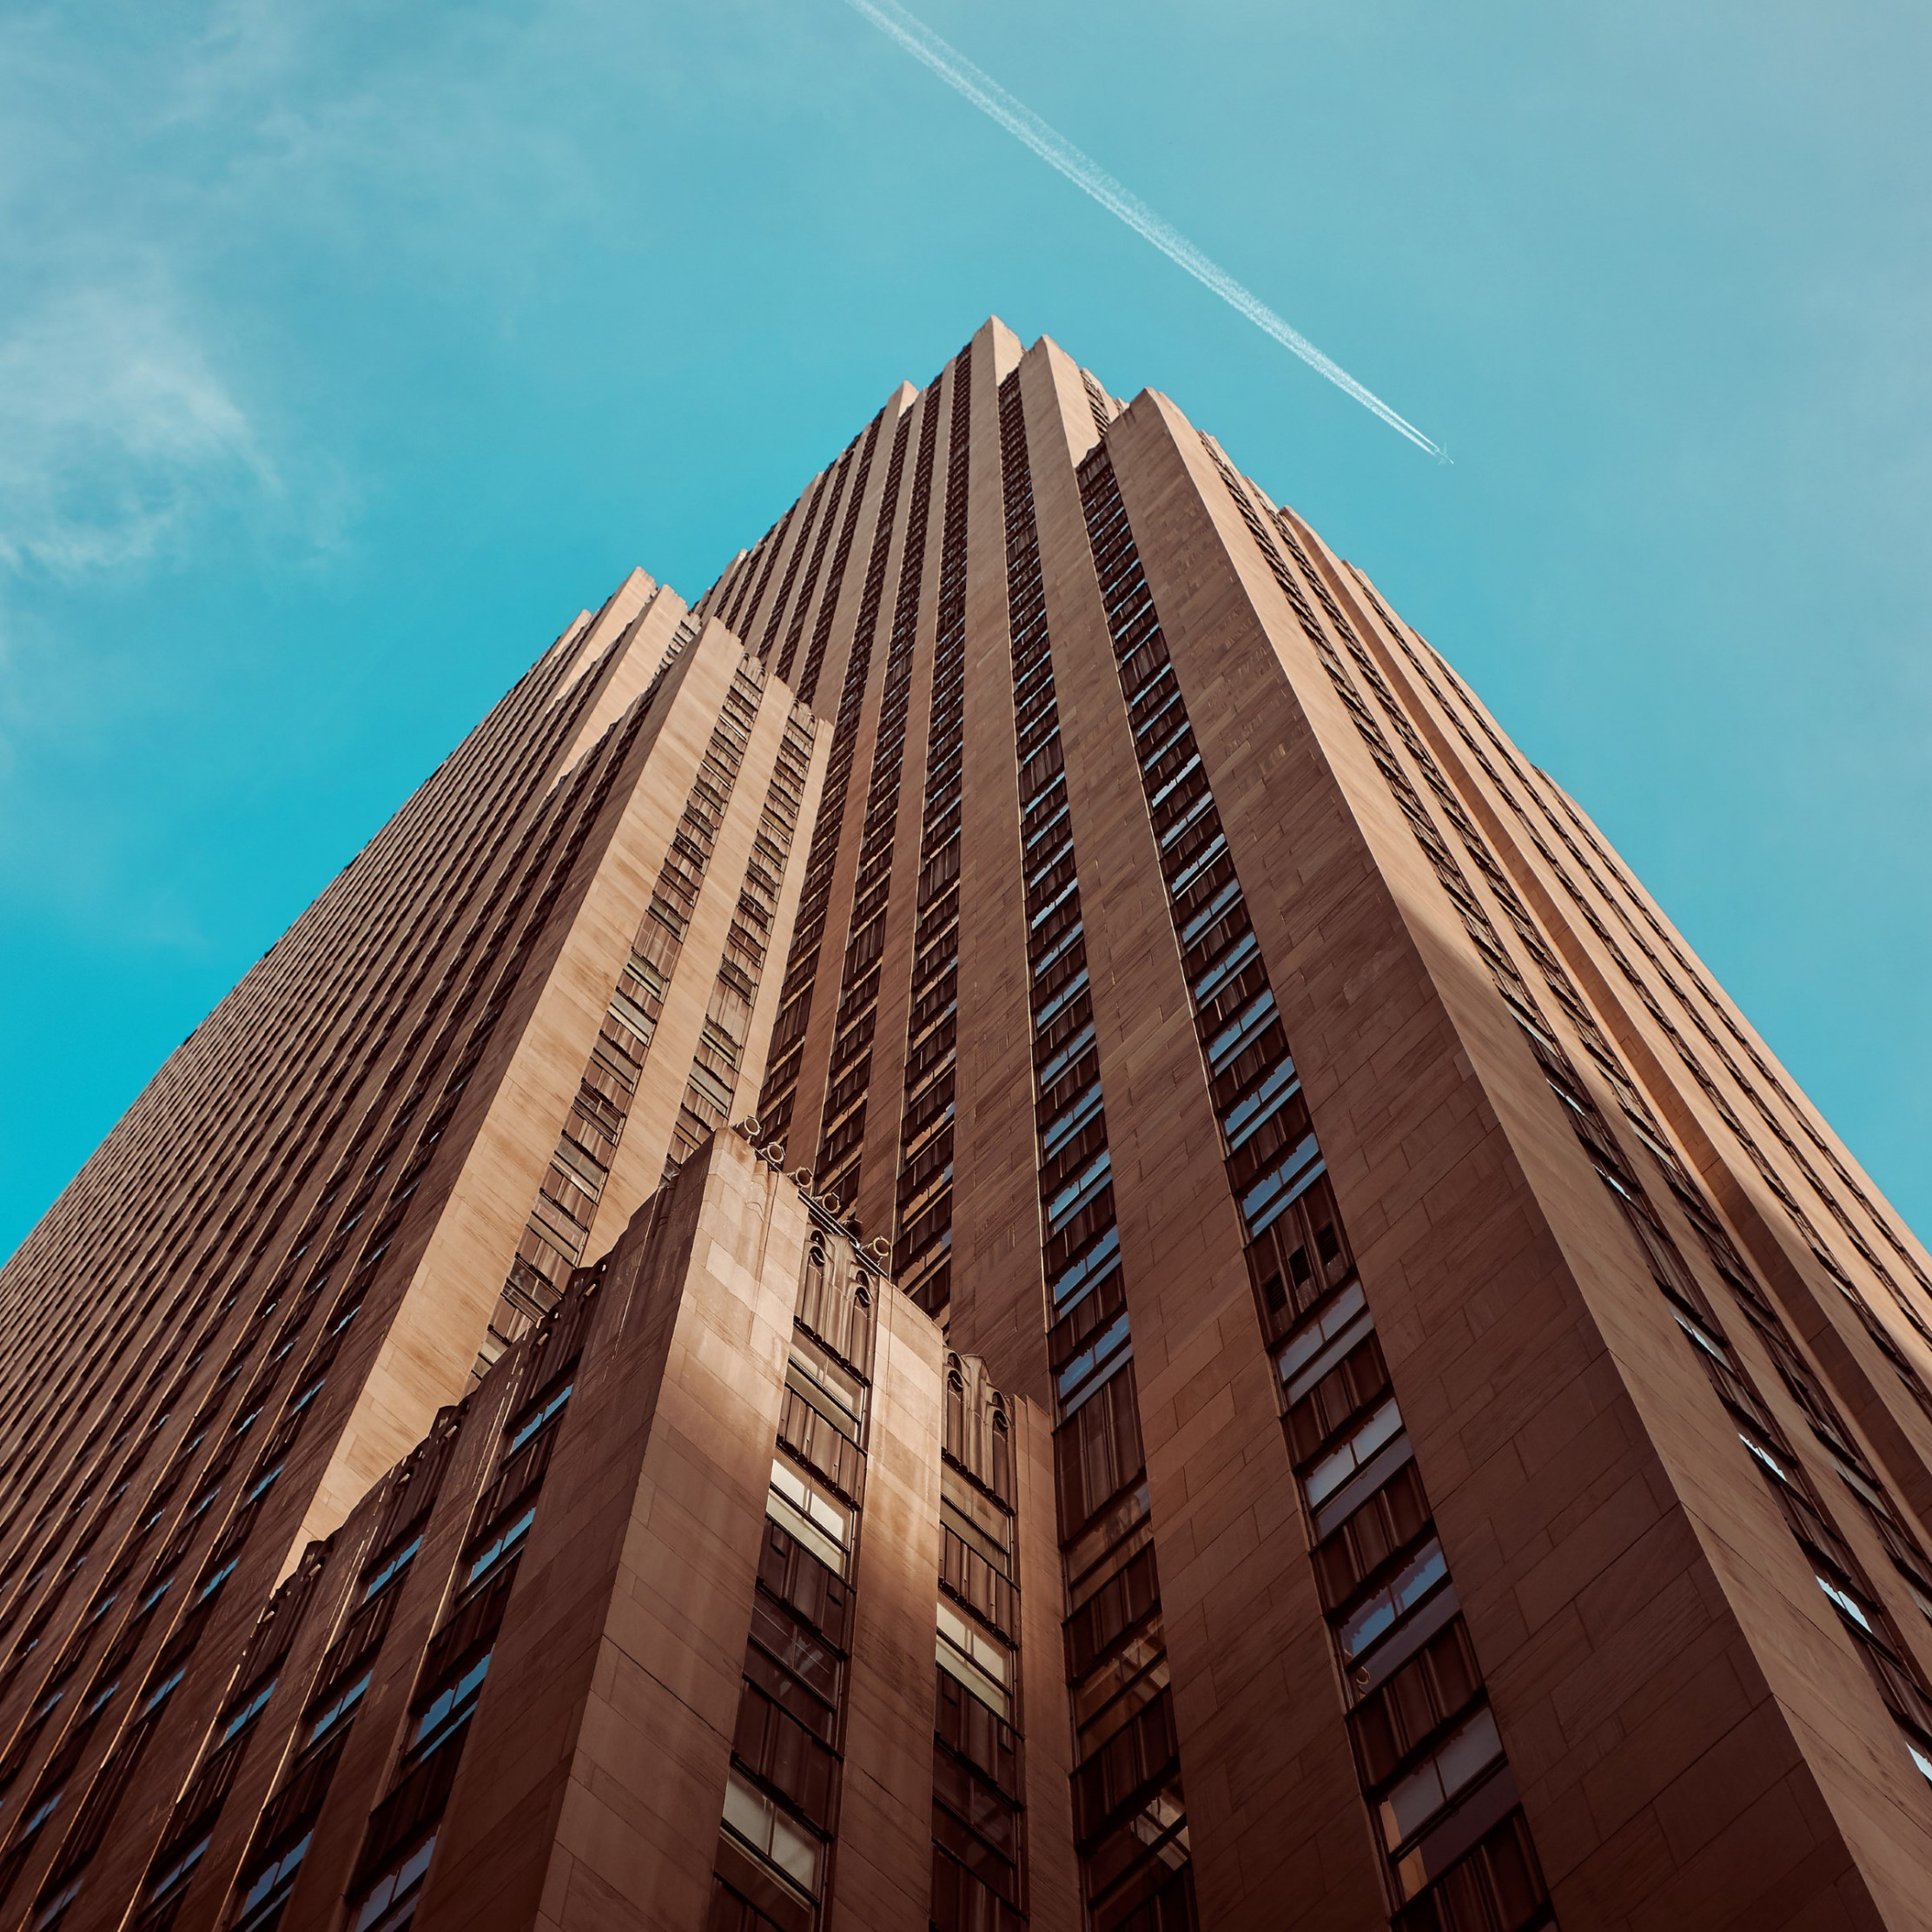 Rockefeller building touching the sky | 2224x2224 wallpaper